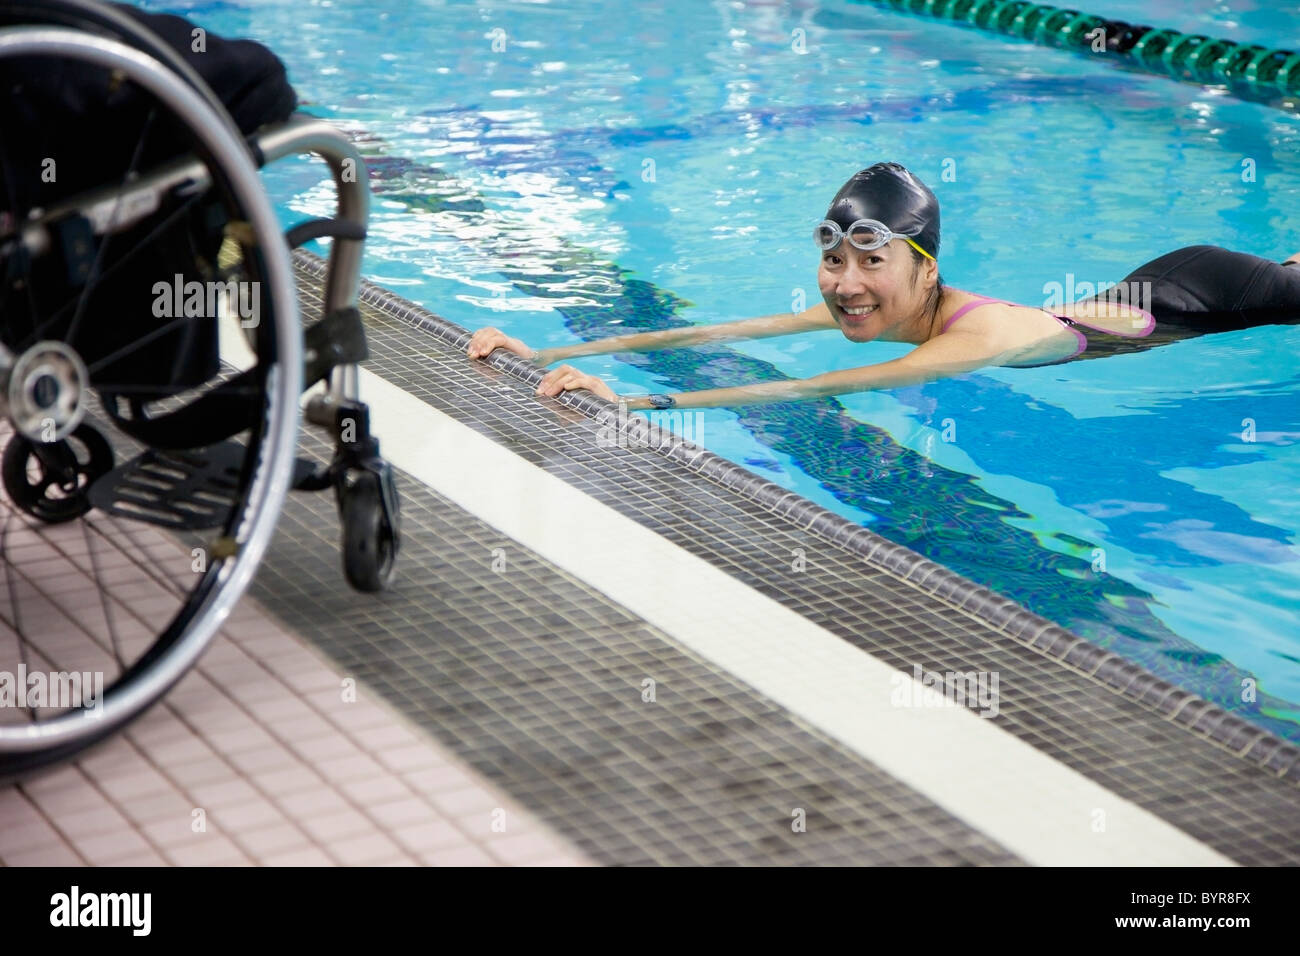 a paraplegic woman swims in a pool with her wheelchair at the water's edge; edmonton, alberta, canada - Stock Image